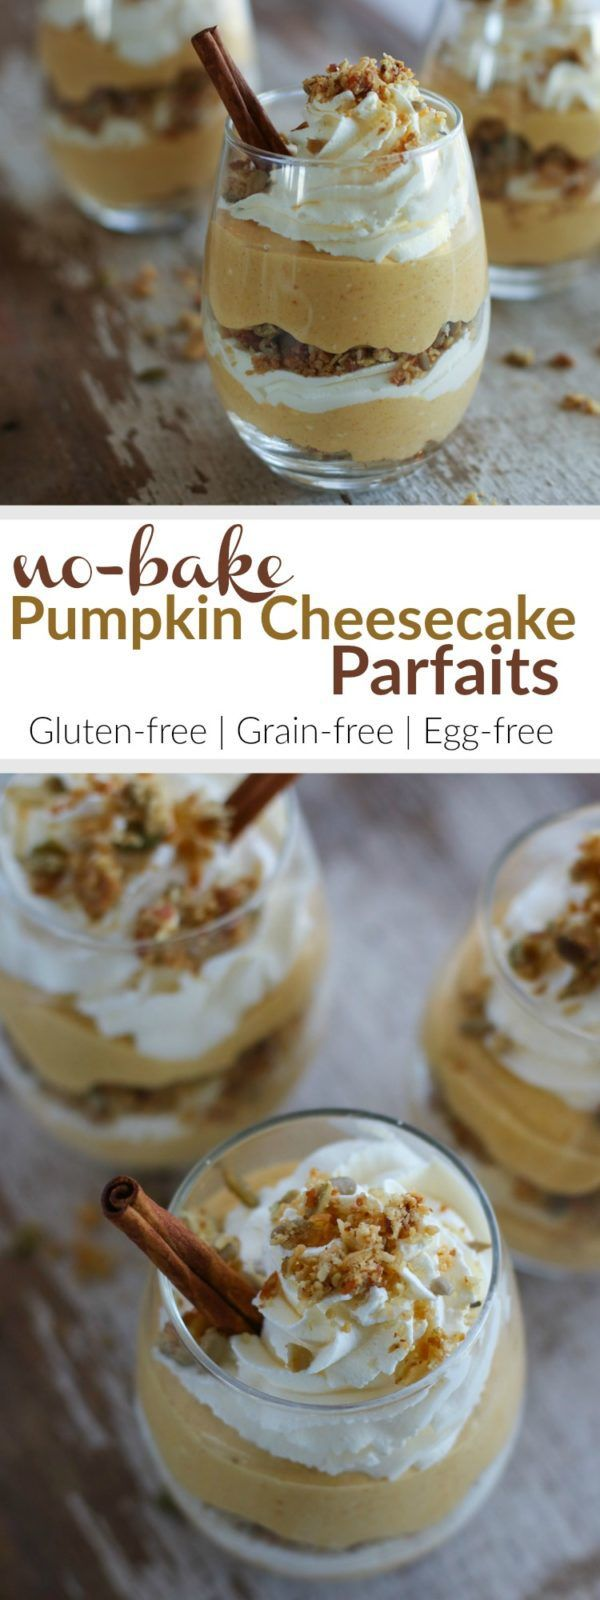 Impress your guests this Holiday season with these adorable No-Bake Pumpkin Cheesecake Parfaits. This gluten-free, grain-free and egg-free dessert combines the ever-so-popular pumpkin pie and traditional cheesecake   therealfoodrds.com